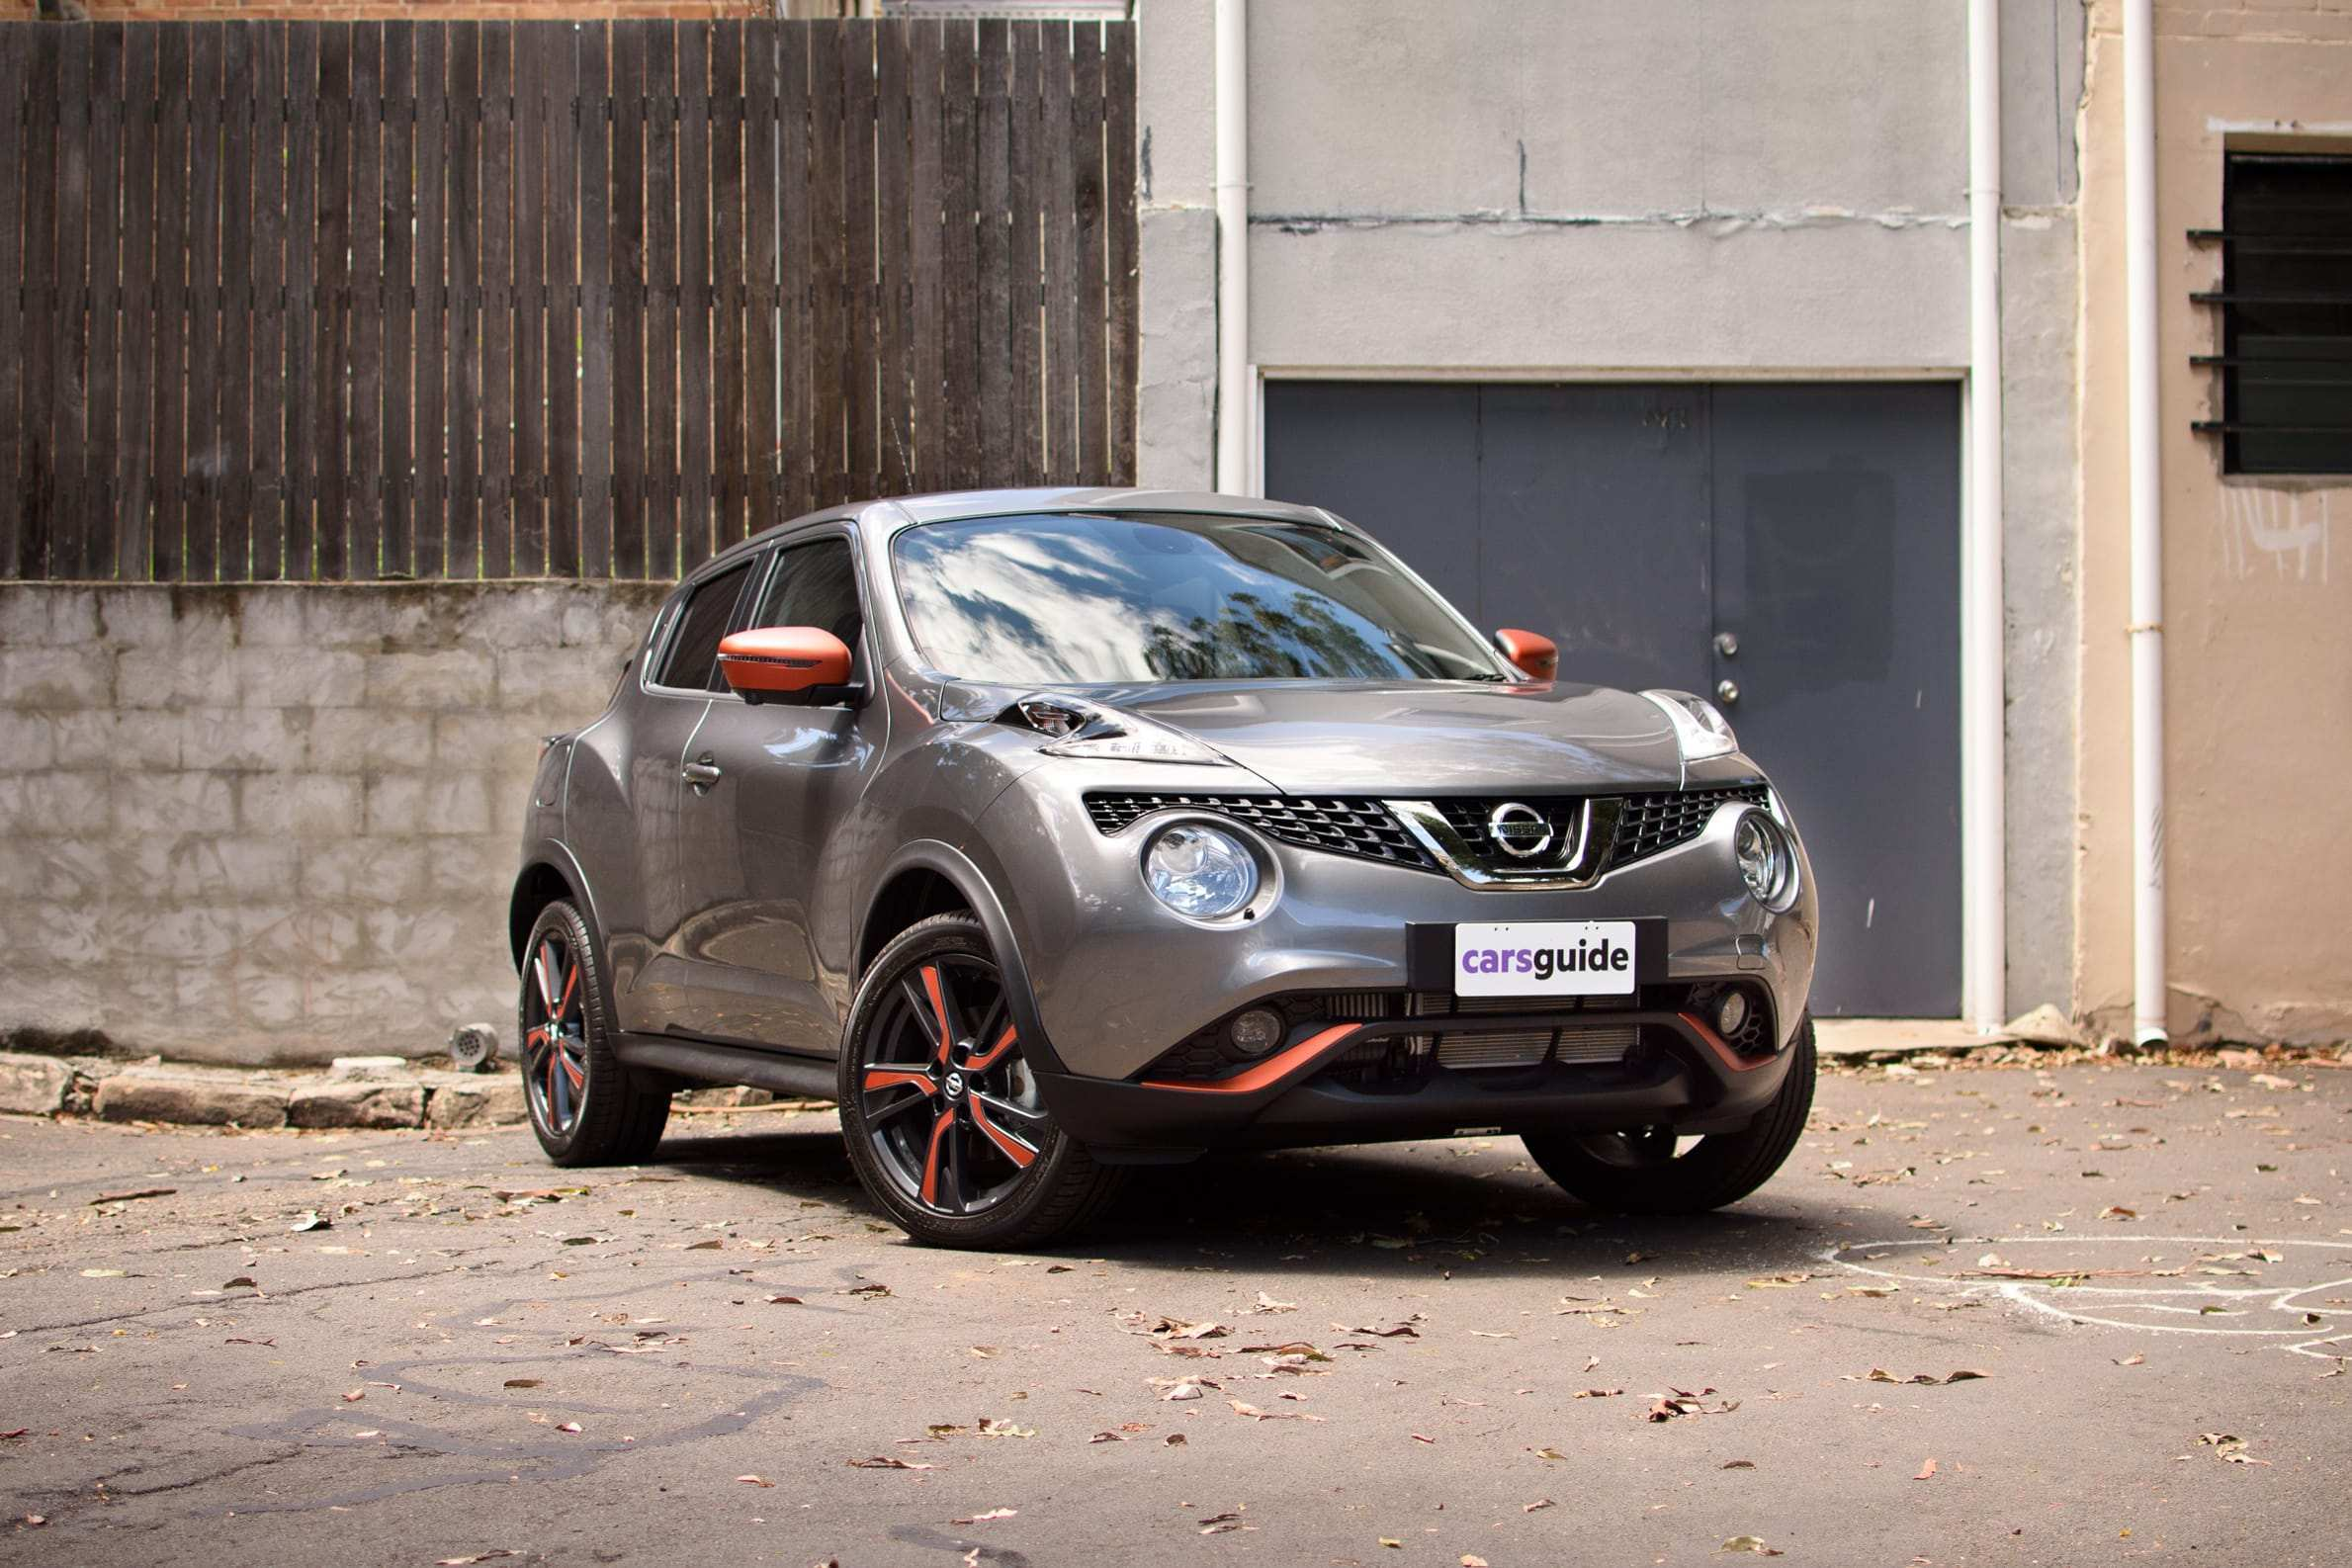 37 All New The Nissan Juke 2019 Review New Release First Drive by The Nissan Juke 2019 Review New Release